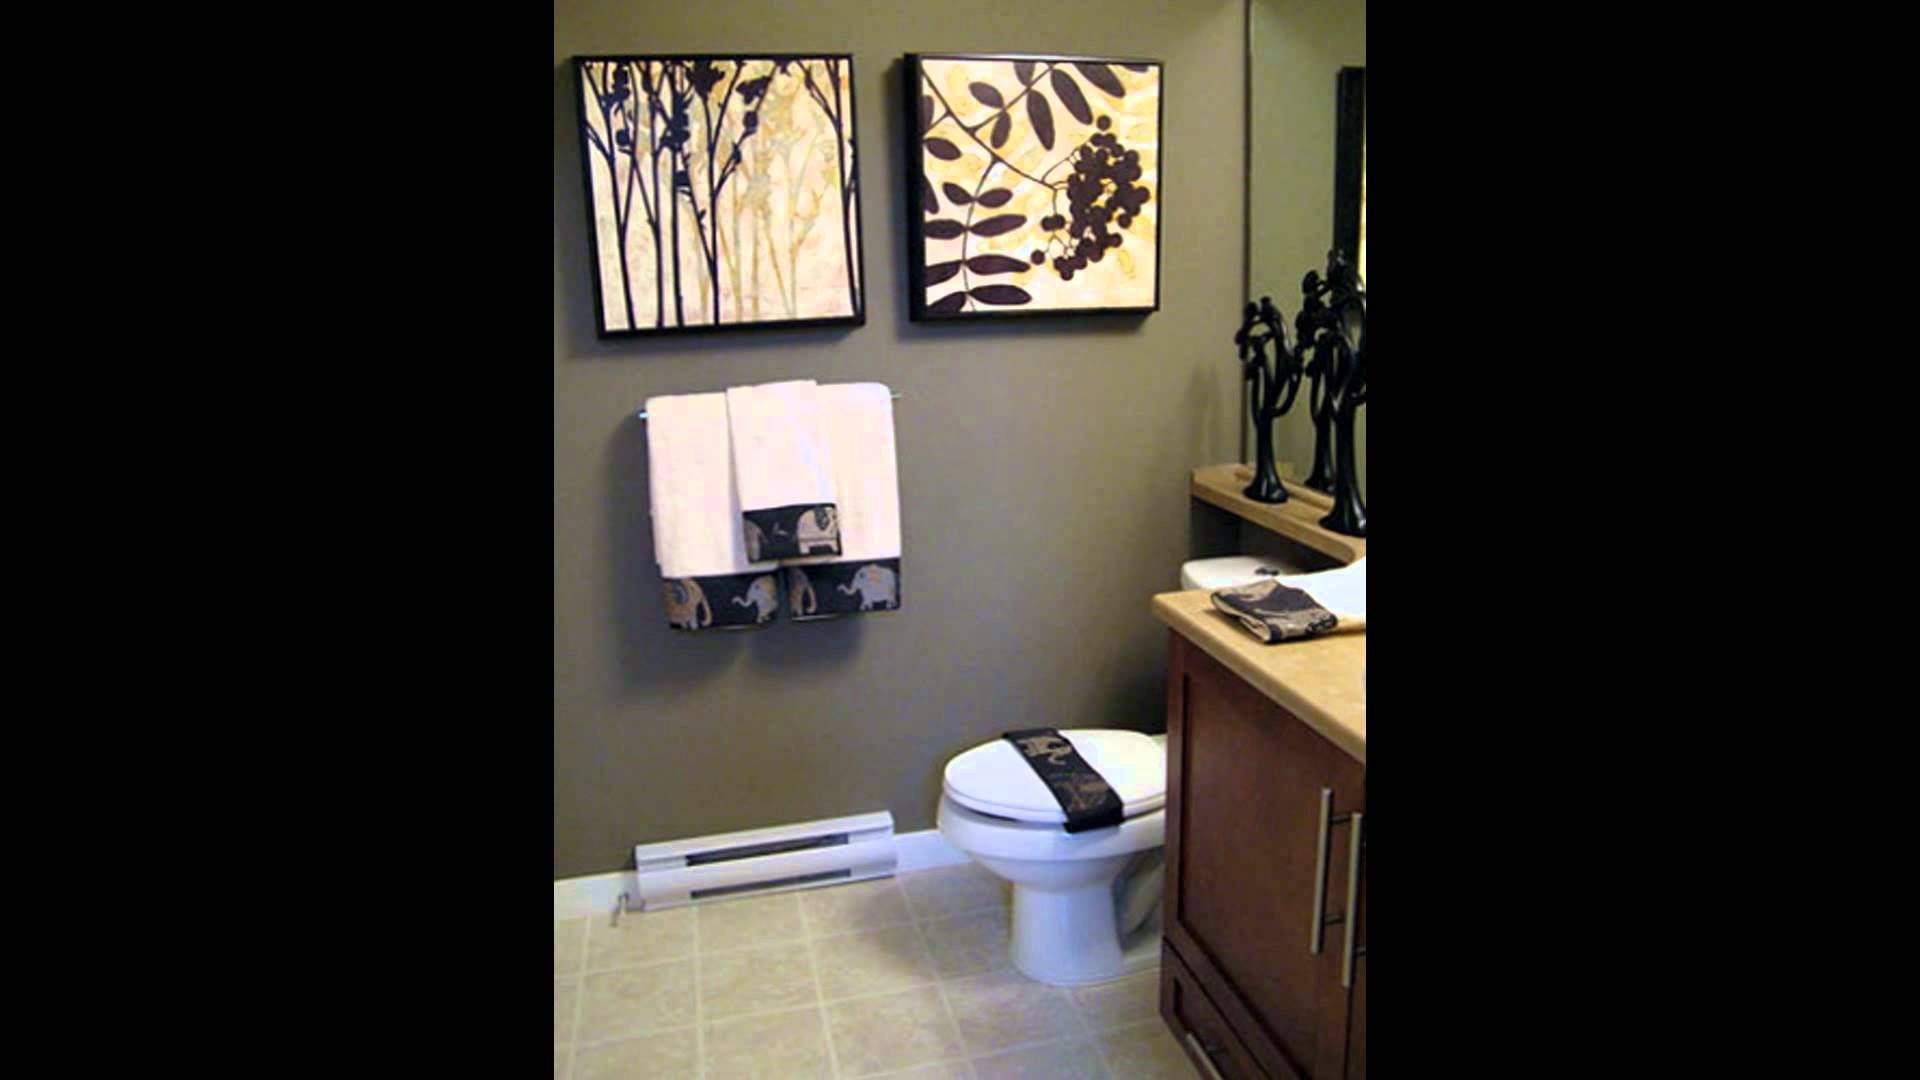 Affordable decorating cheap home decor accessories 27839178 low budget interior decorating ideas ideas for affordable home decor